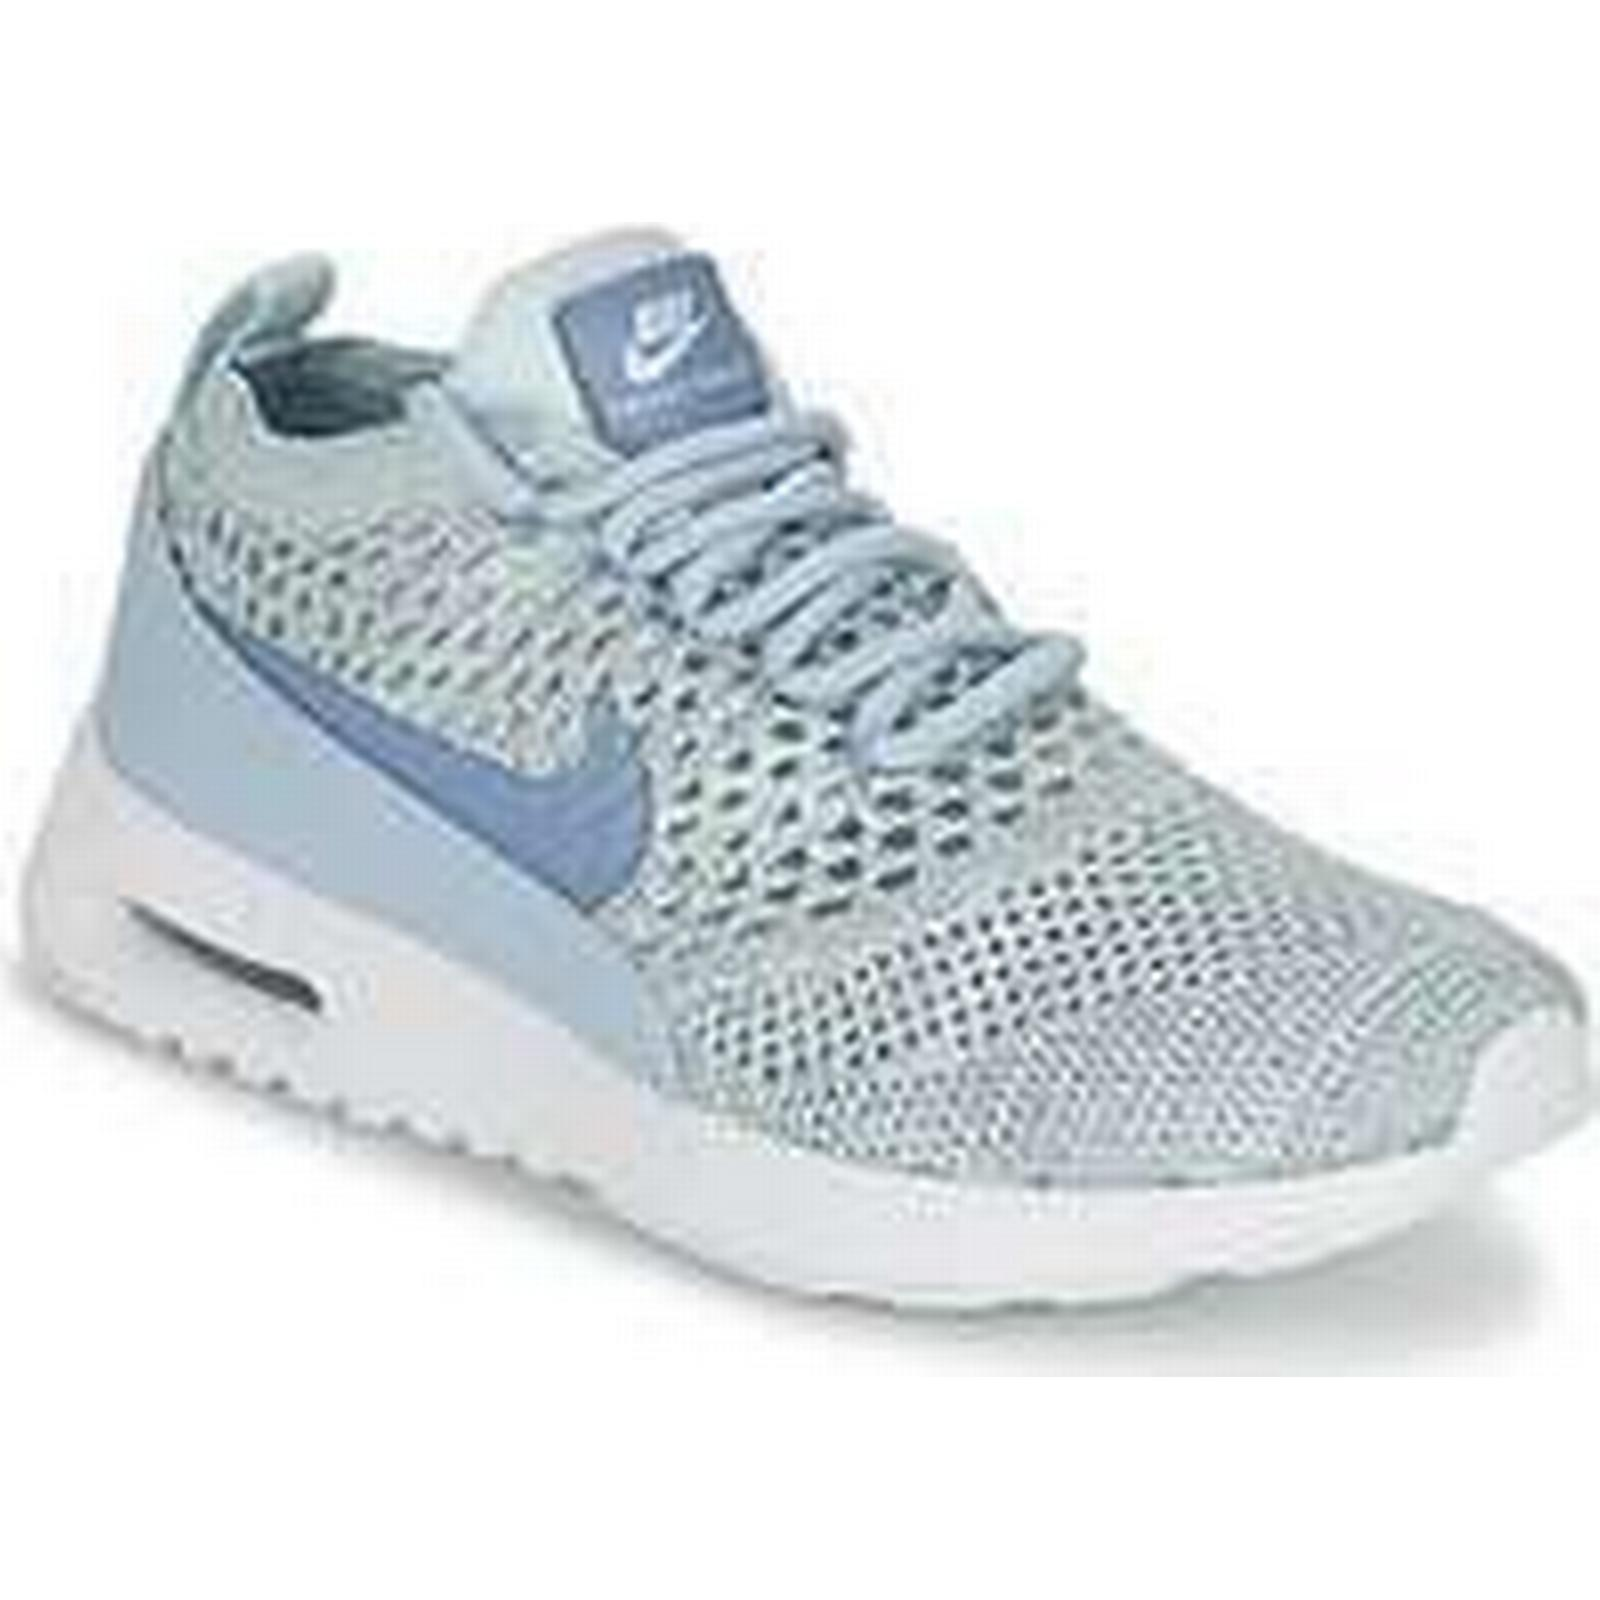 Spartoo.co.uk Nike AIR MAX THEA ULTRA FLYKNIT in W women's Shoes (Trainers) in FLYKNIT Blue 76a3a6